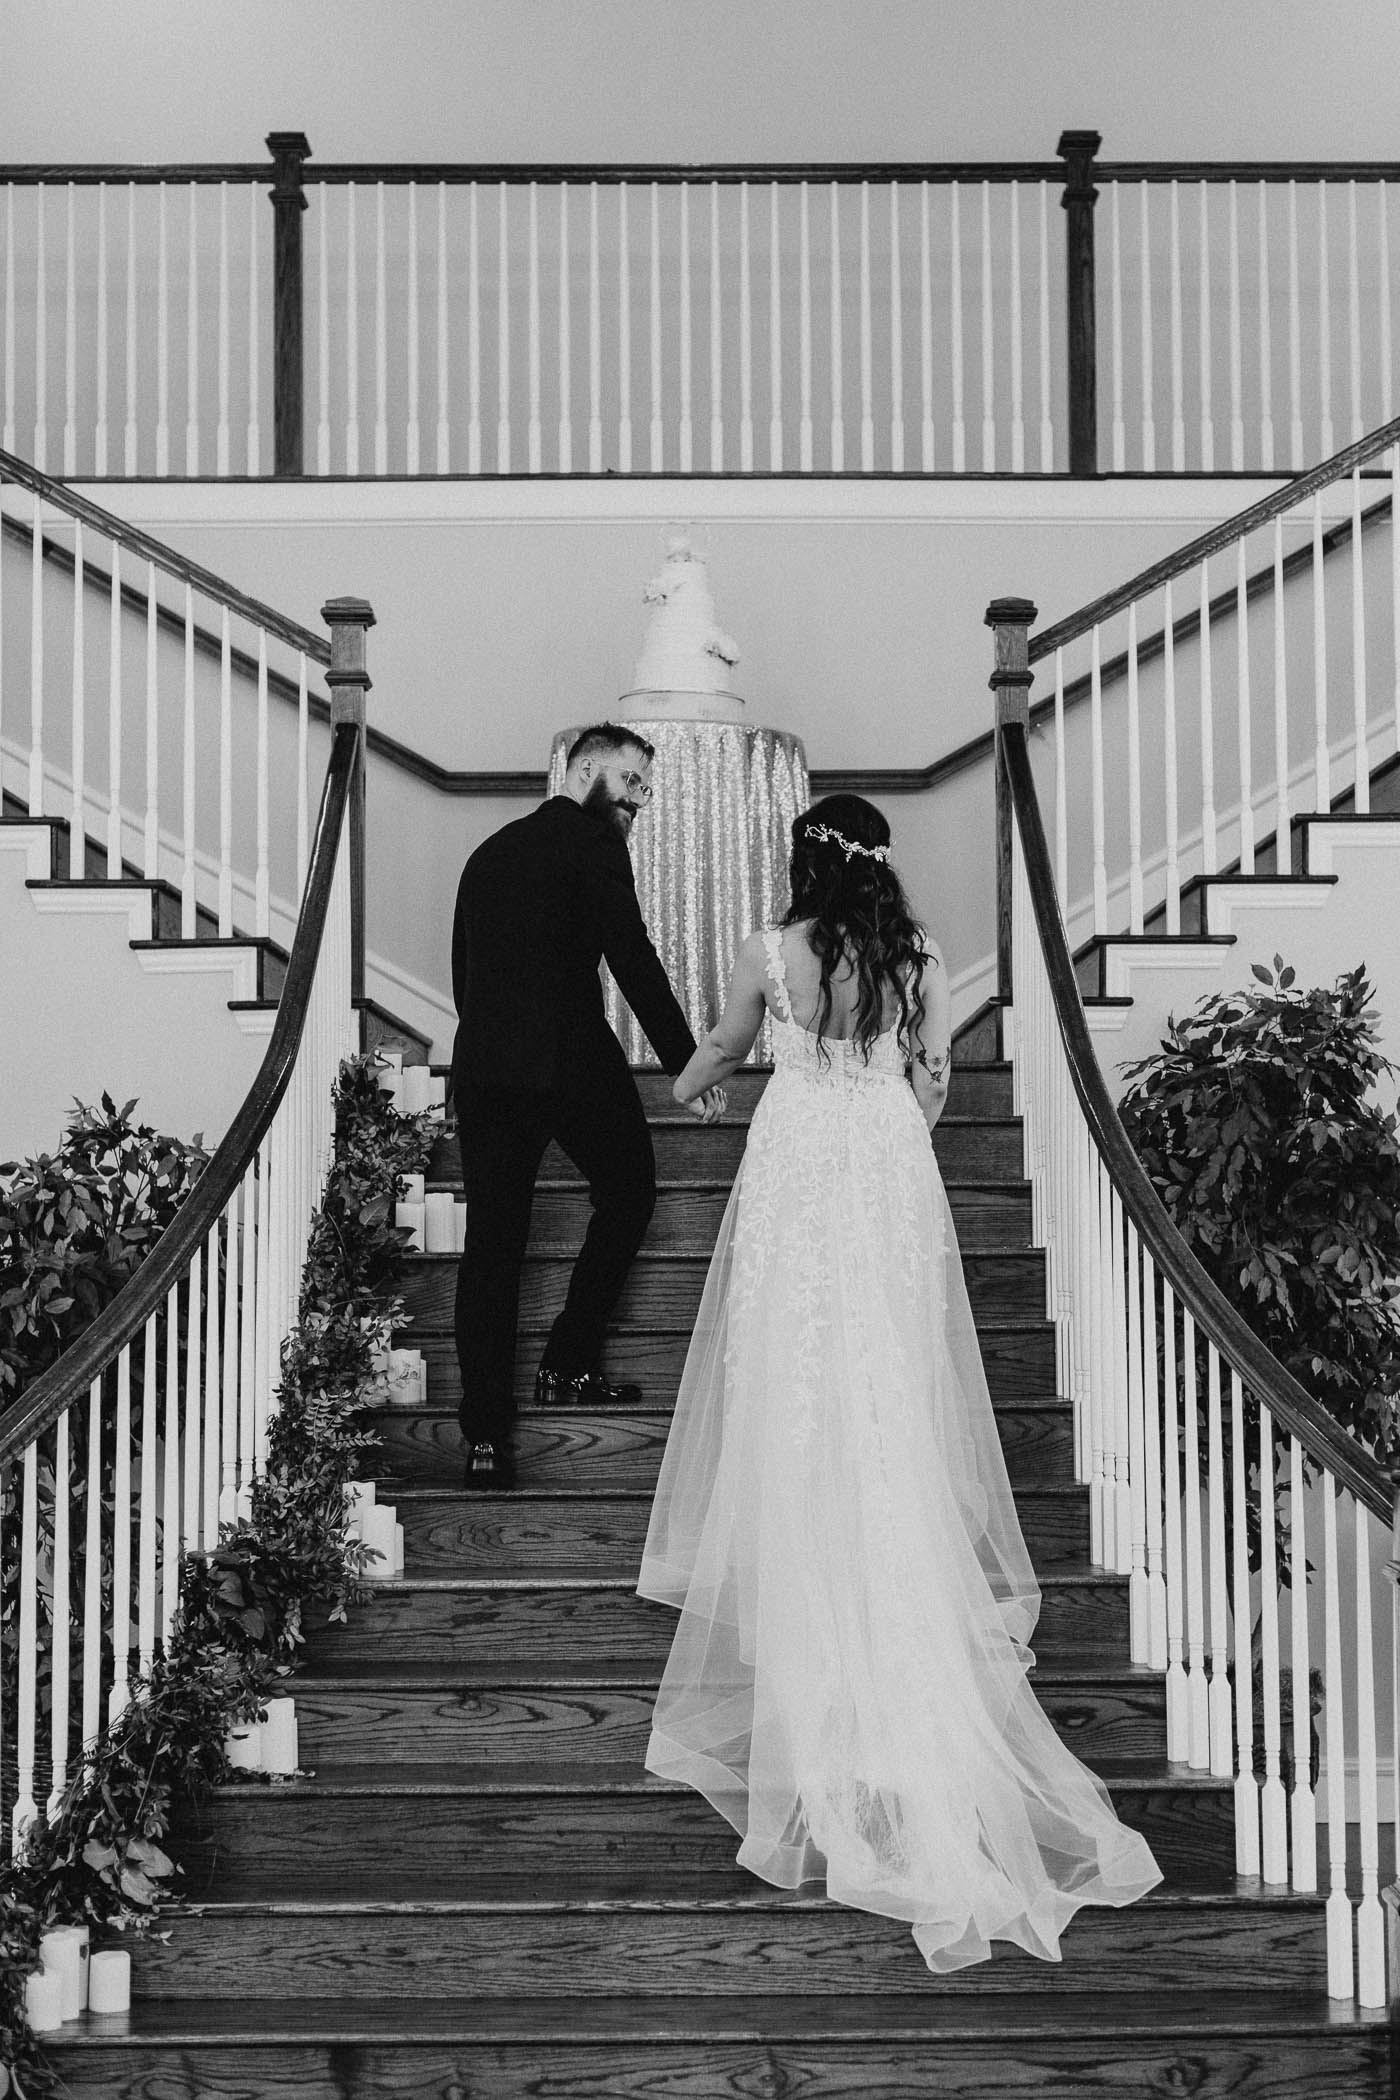 Black and white of bride and groom walking up stairs during wedding reception